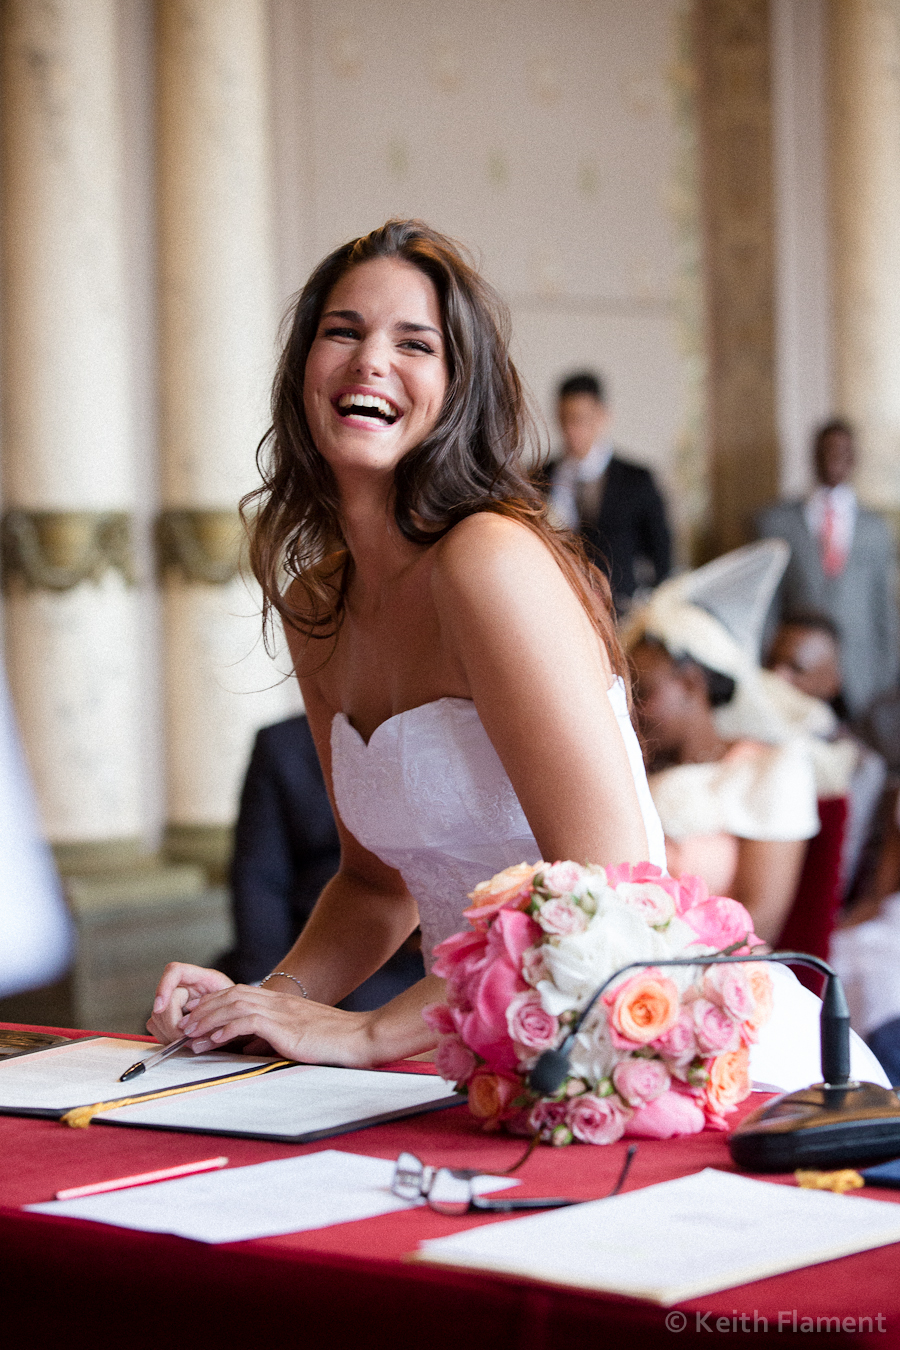 reportage-mariage-keith-flament-chantilly-oise-32